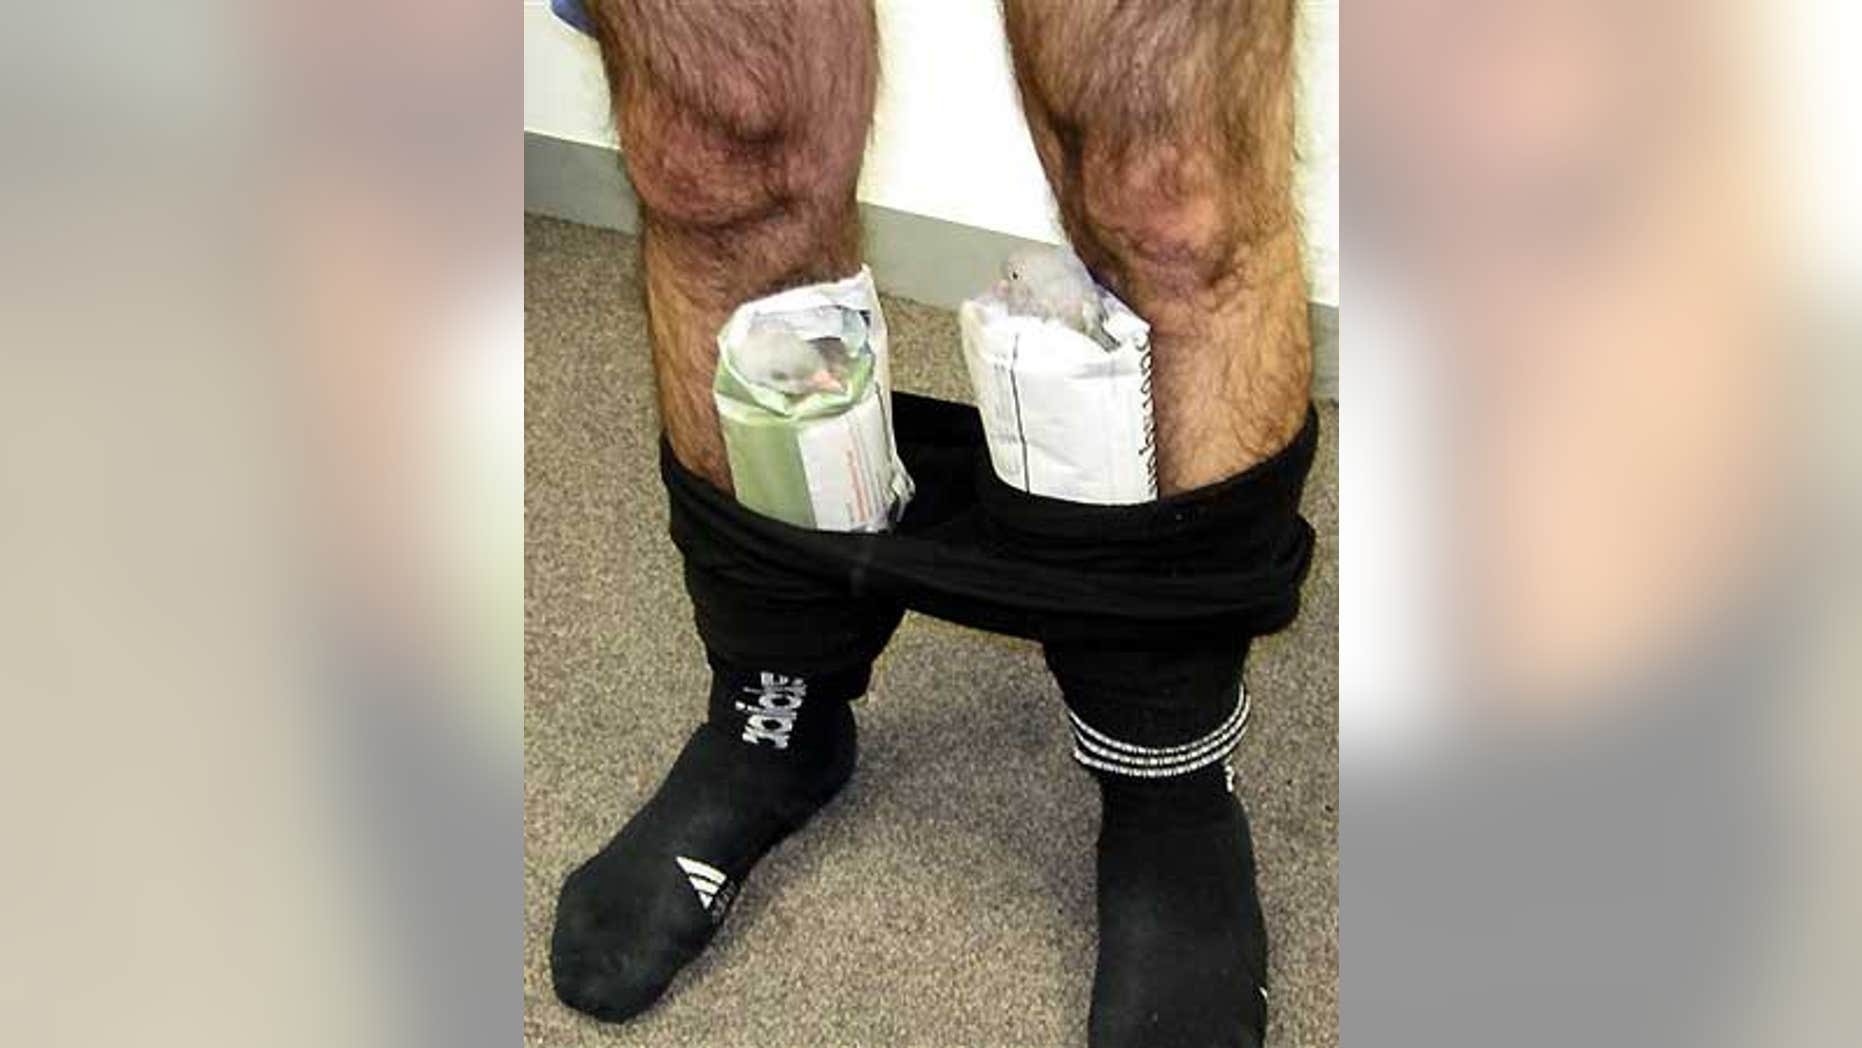 Feb. 1: An Australian man was caught with two pigeons hidden in his pants on an international flight from Dubai to Melbourne, Australia.